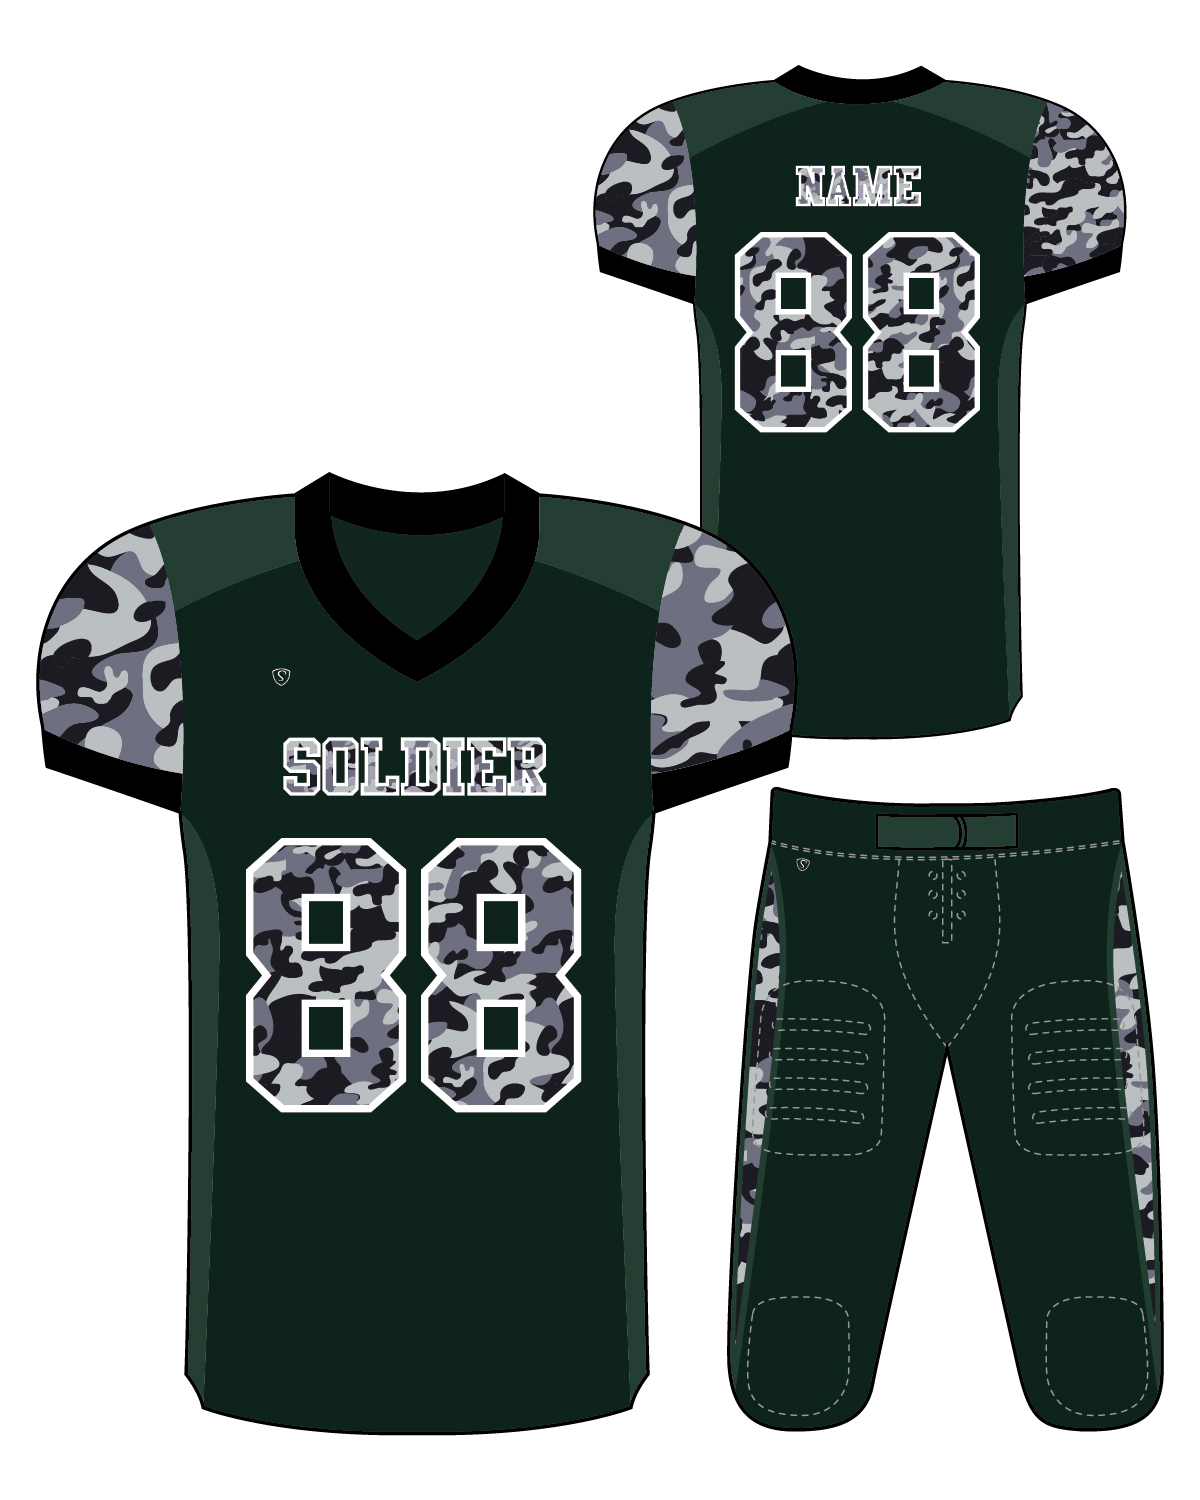 Sublimated Jersey - Soldier